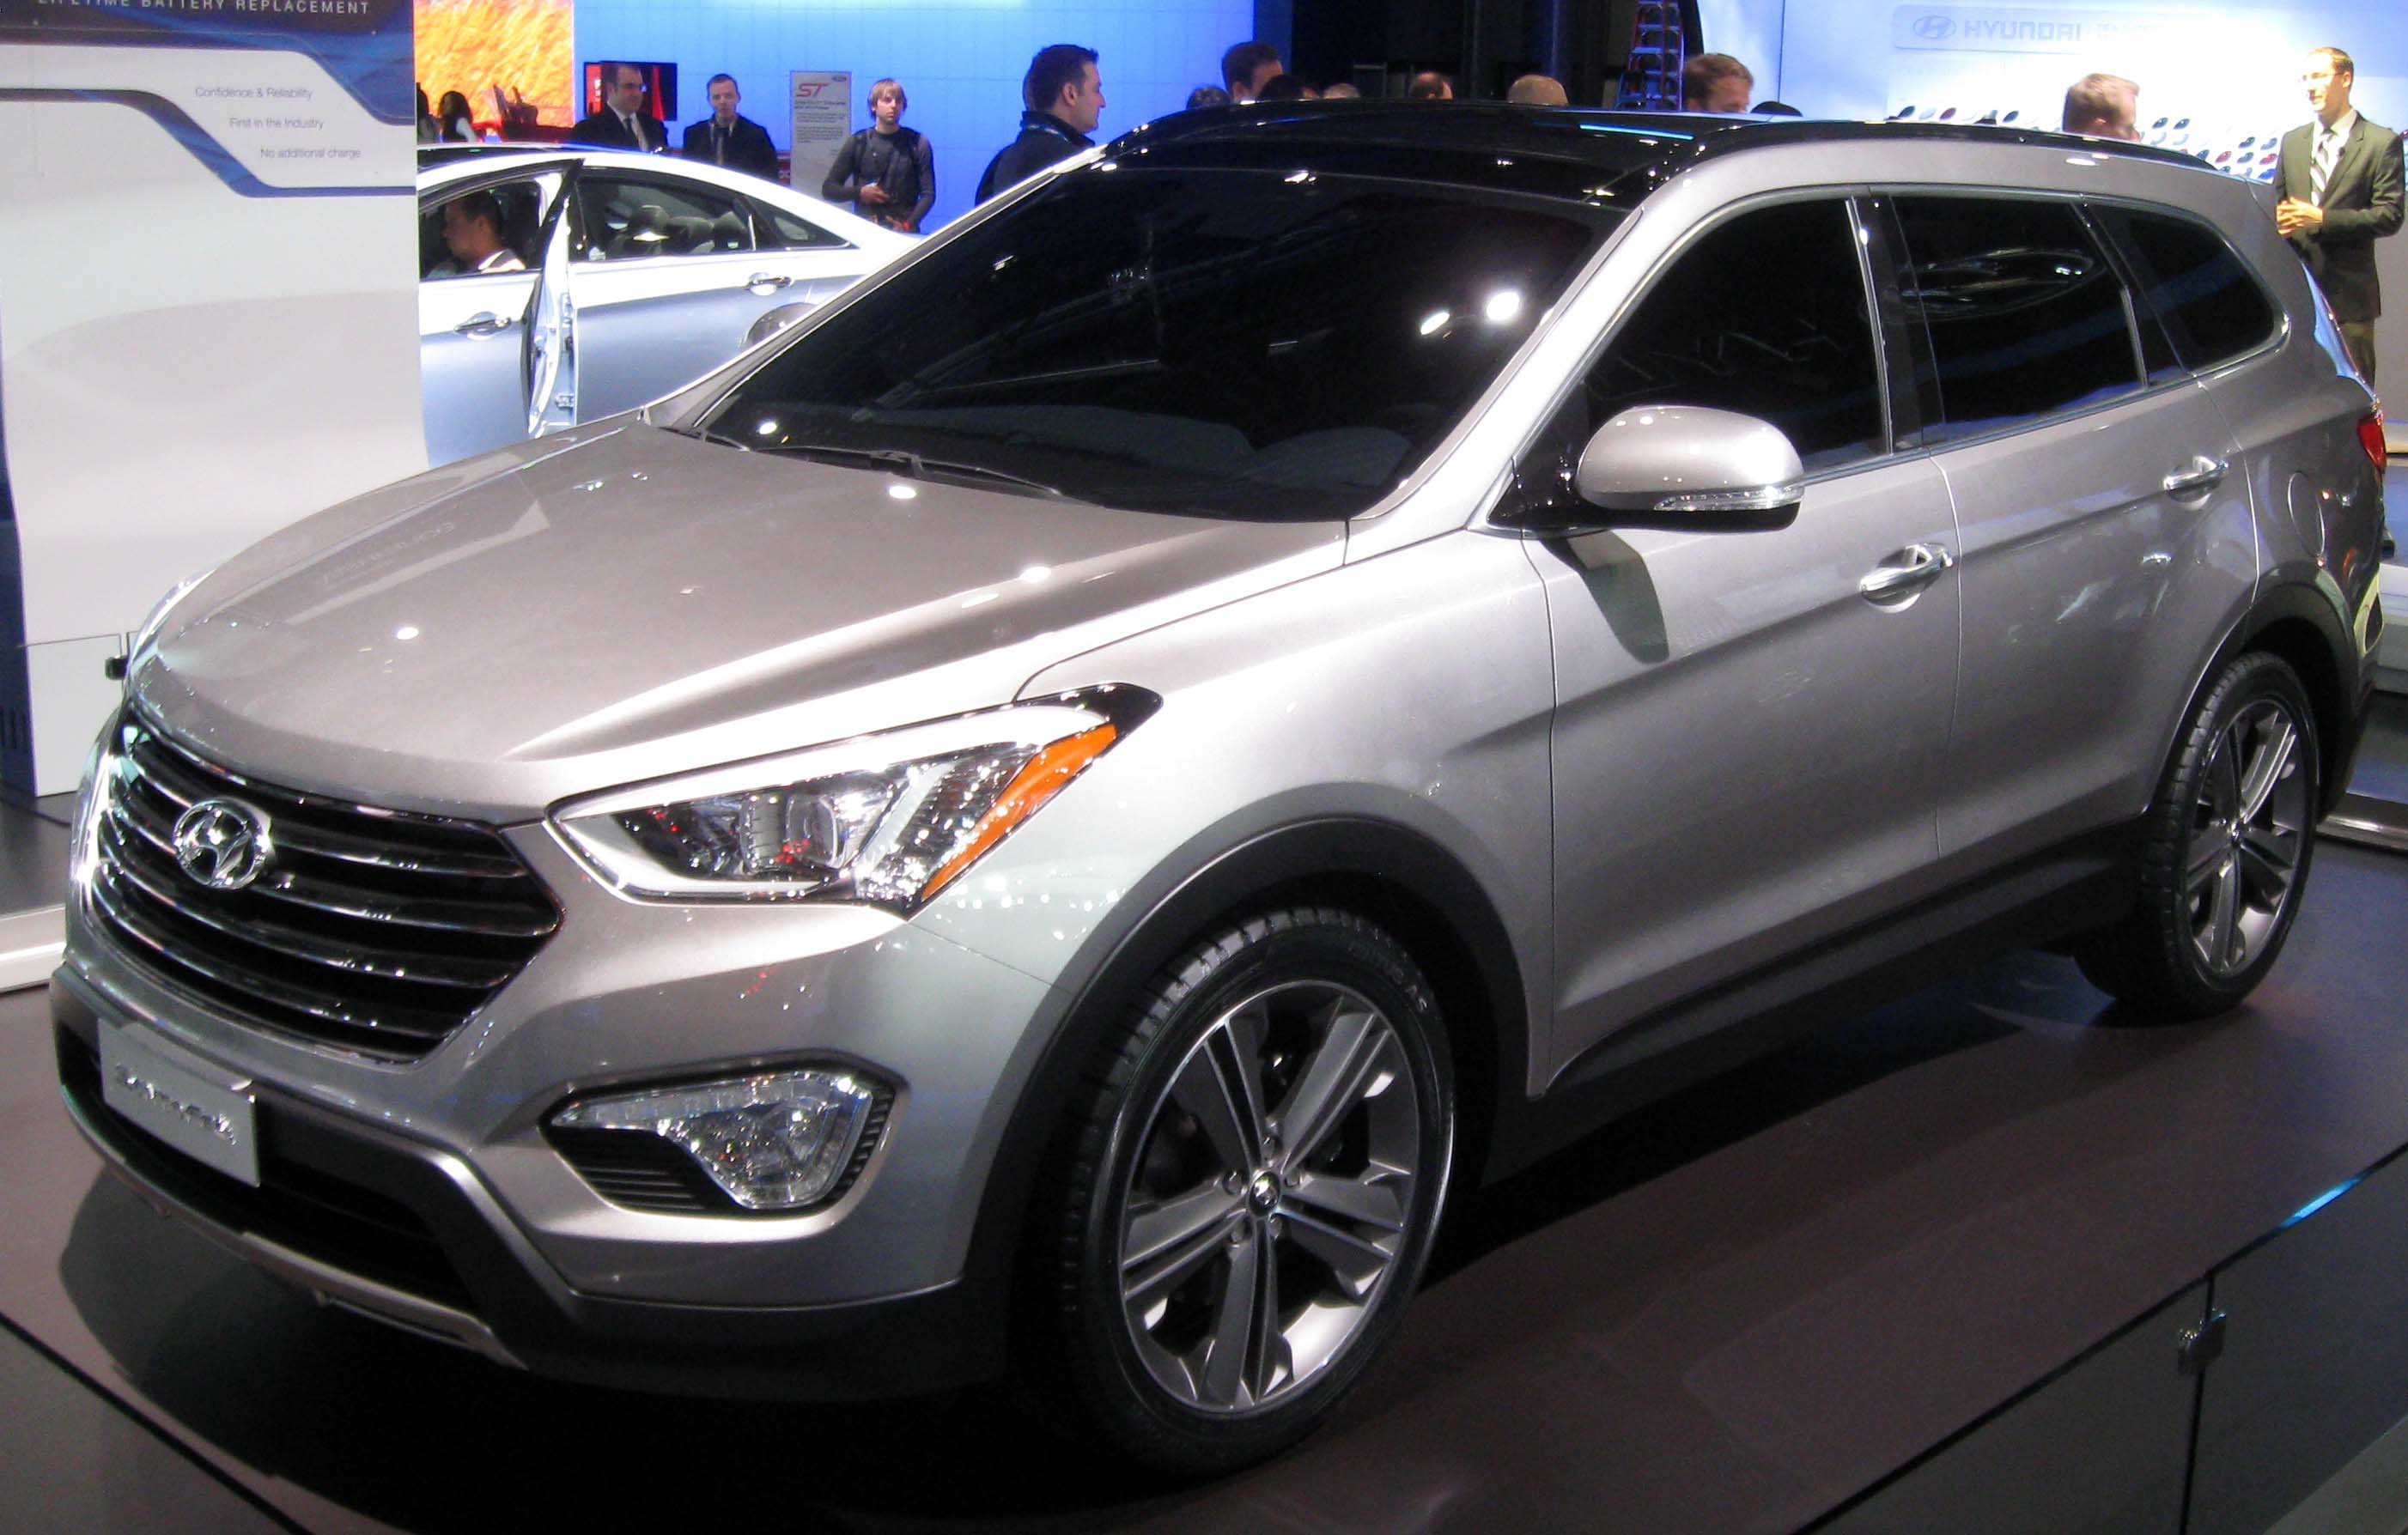 file 2013 hyundai santa fe lwb 2012 nyias jpg wikipedia. Black Bedroom Furniture Sets. Home Design Ideas